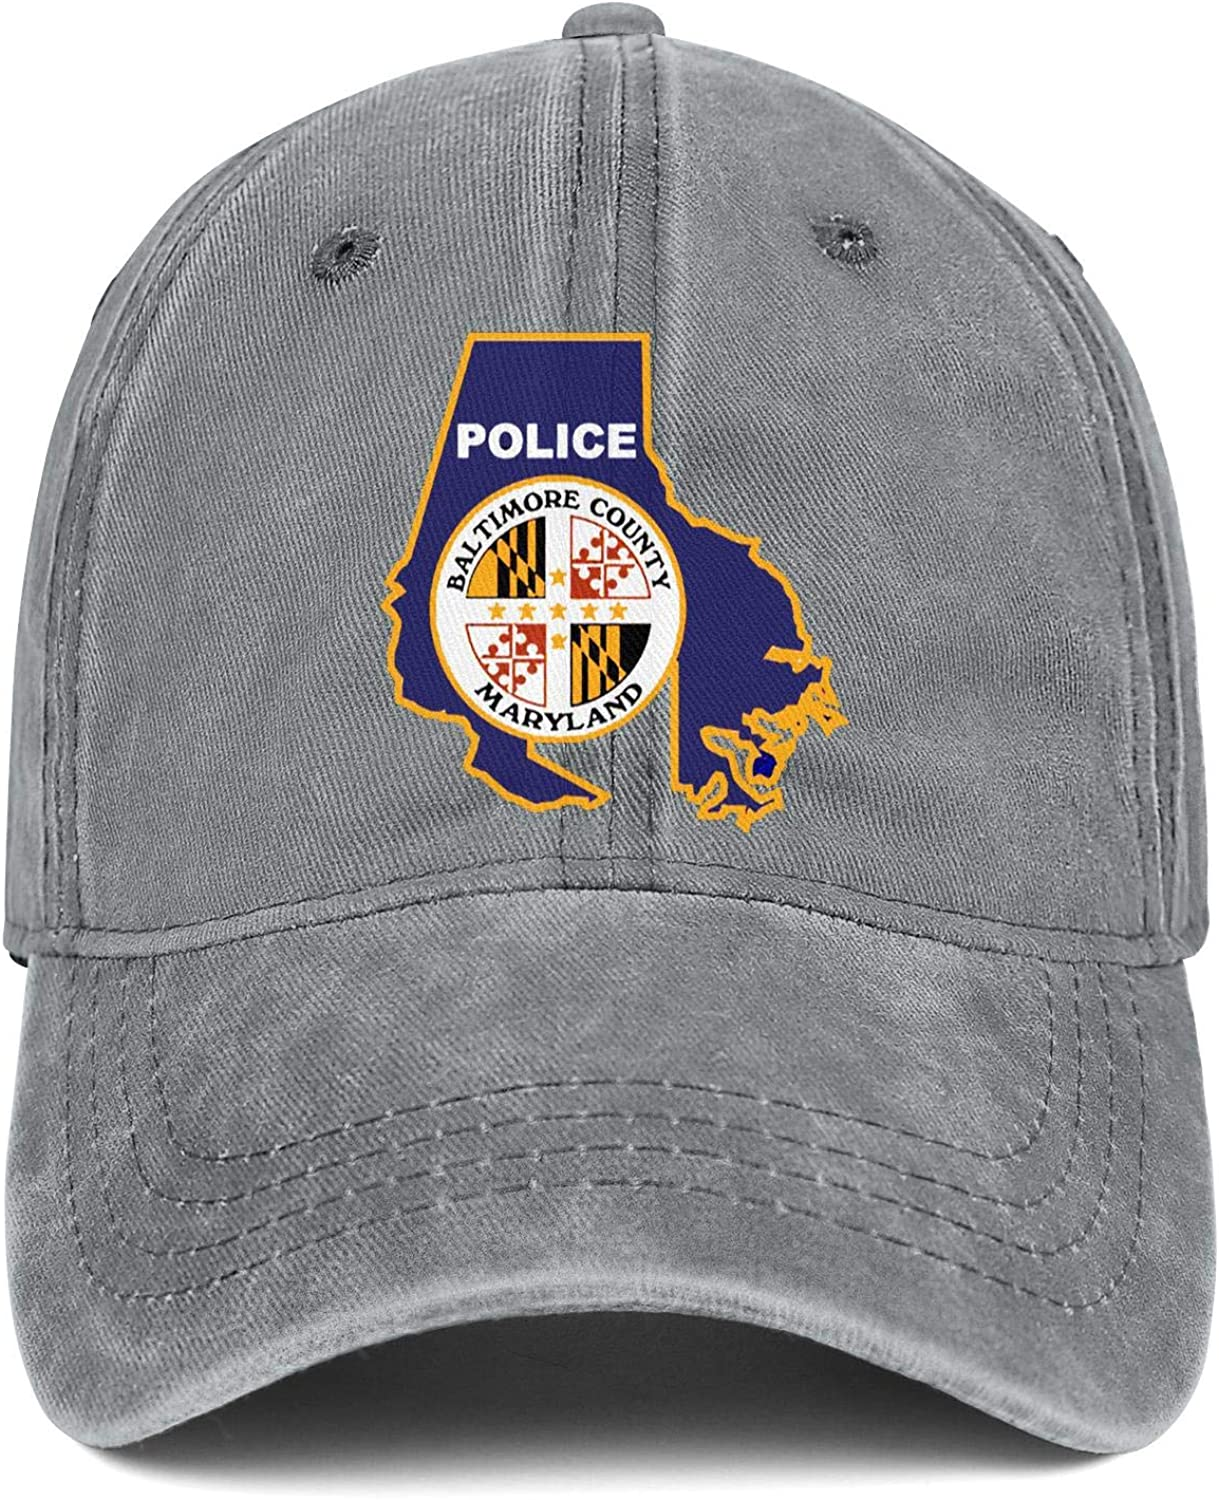 SNEFUEE Man Womens Maryland Baltimore County Police Cap Printed Denim Cowboy Hat Running Caps